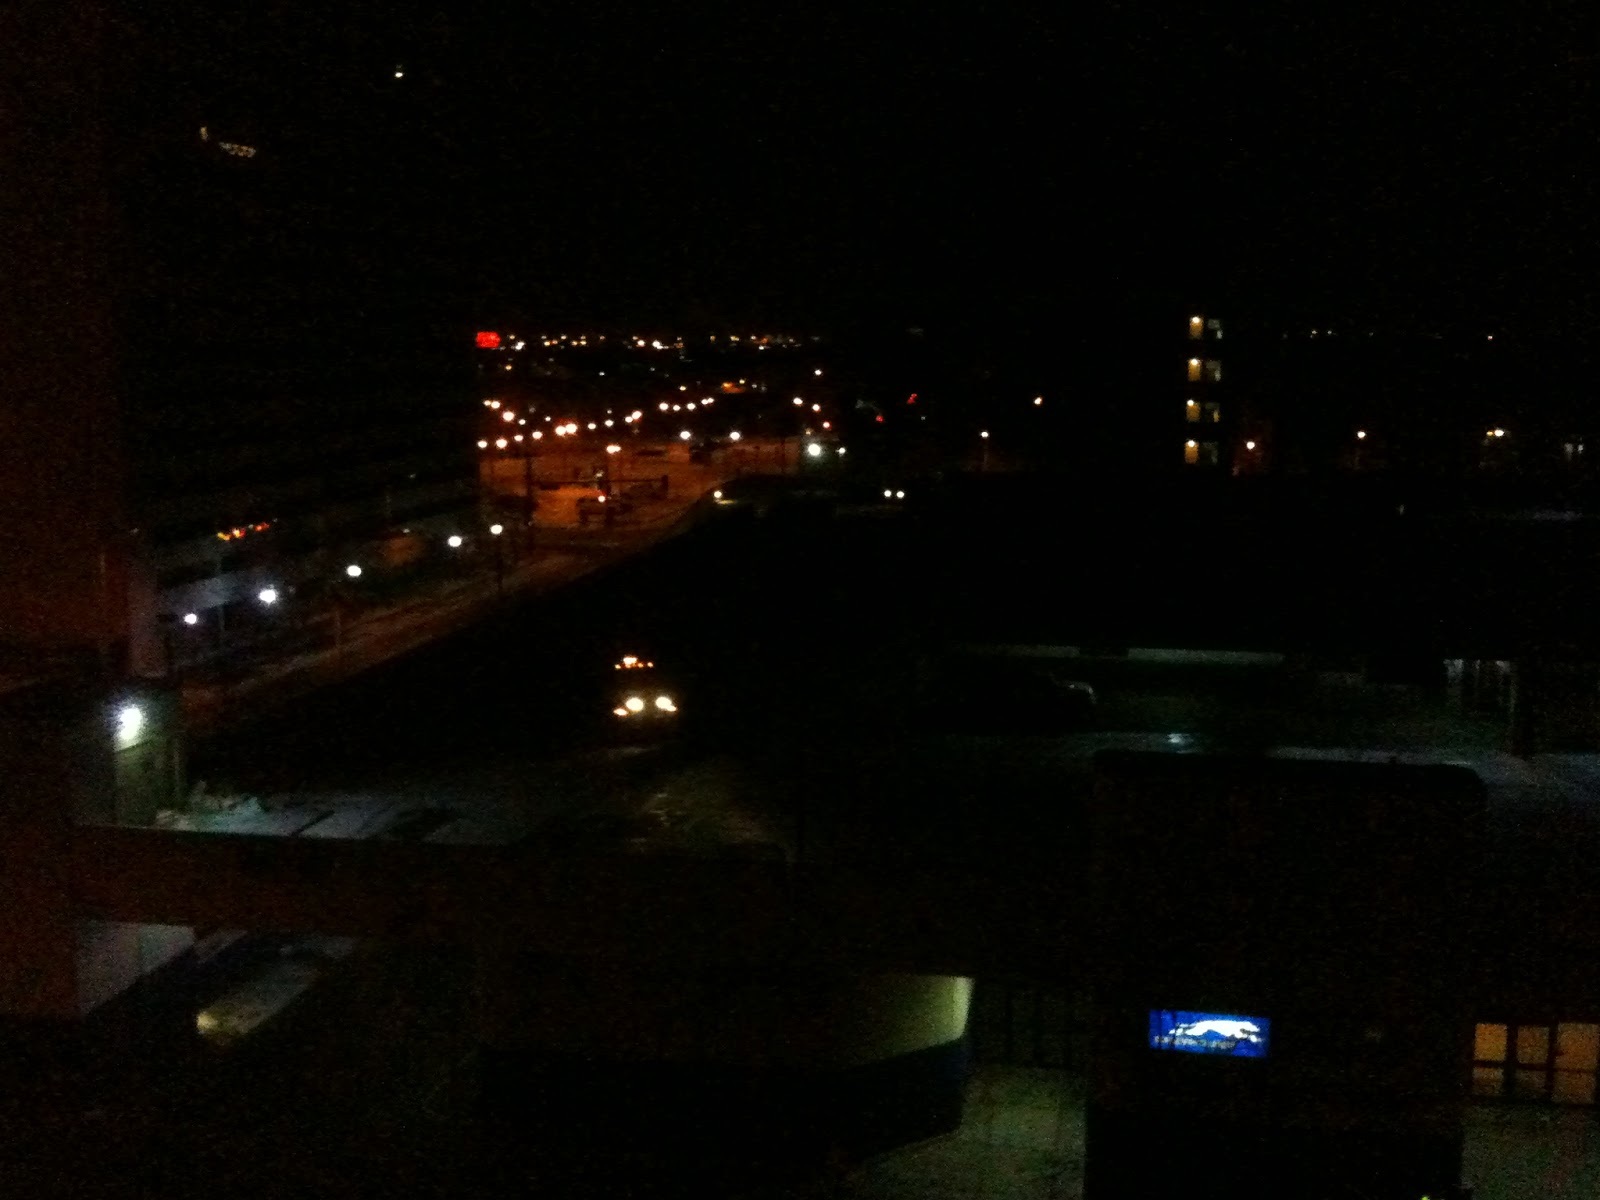 A Bob's Life: Out the Hotel Window - Denver